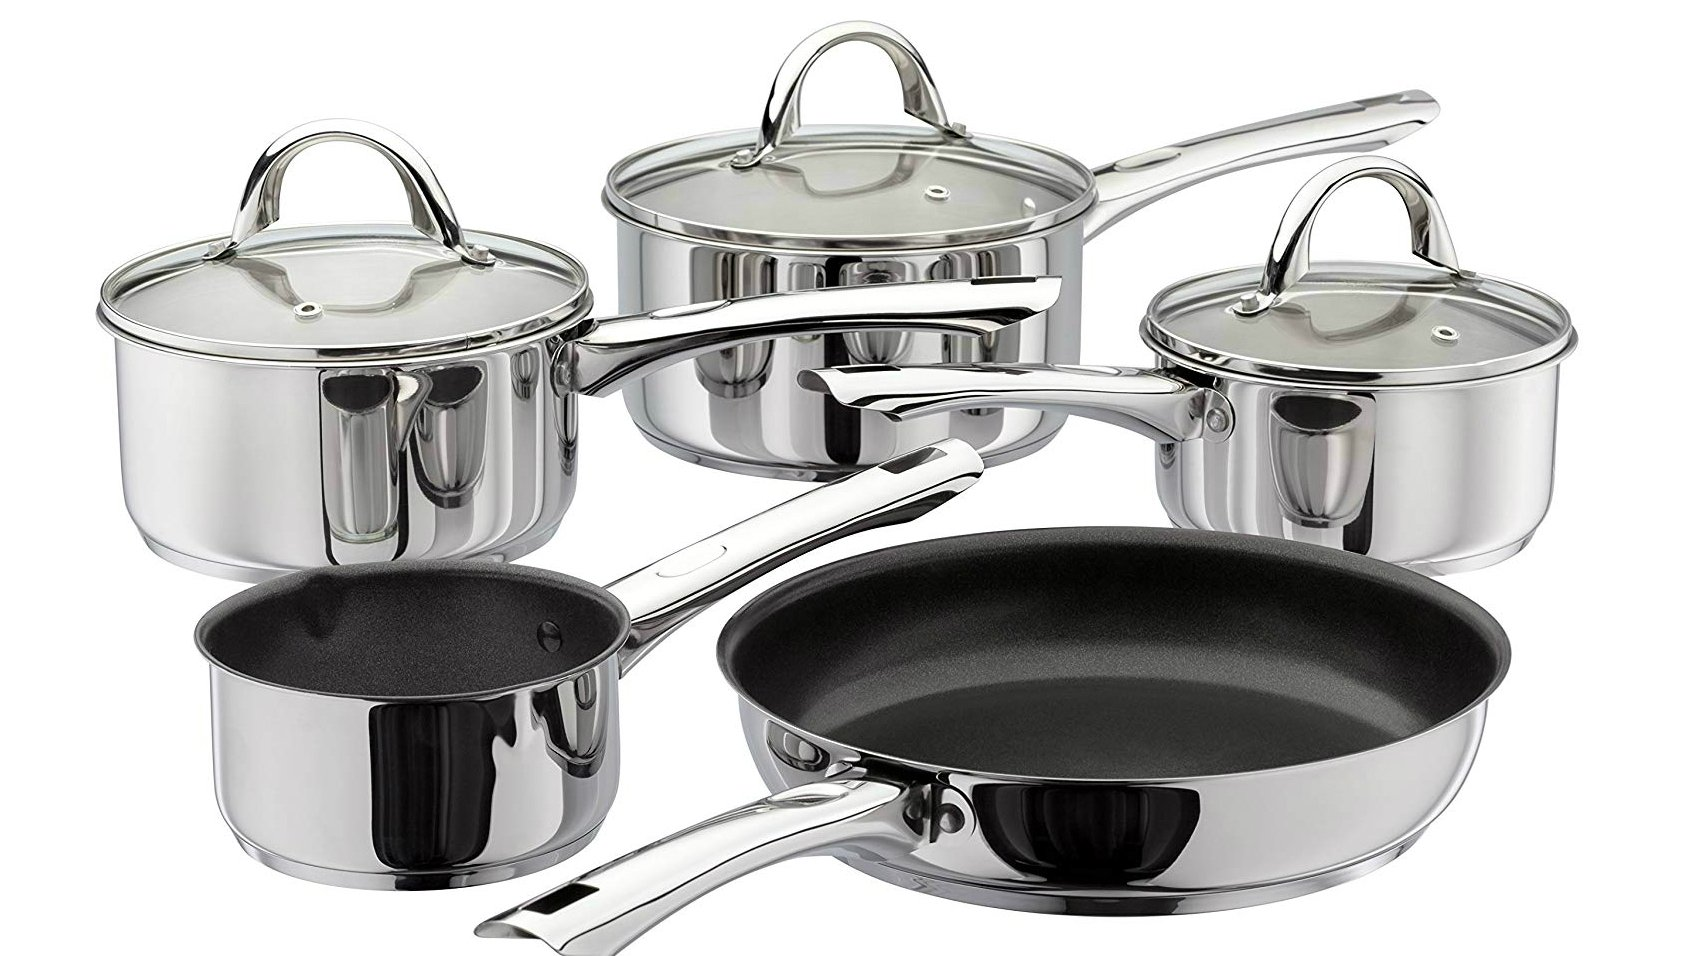 Best saucepans 2019: Cook up a storm with the best pan sets